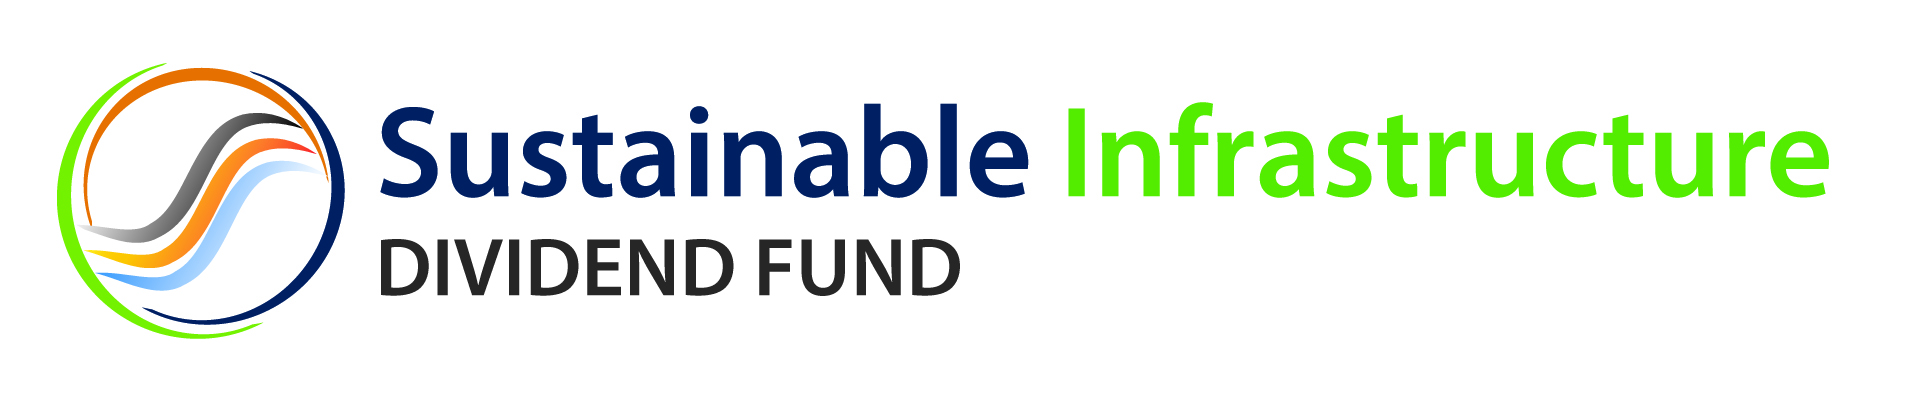 SUSTAINABLE INFRASTRUCTURE DIVIDEND FUND NORMAL COURSE ISSUER BID